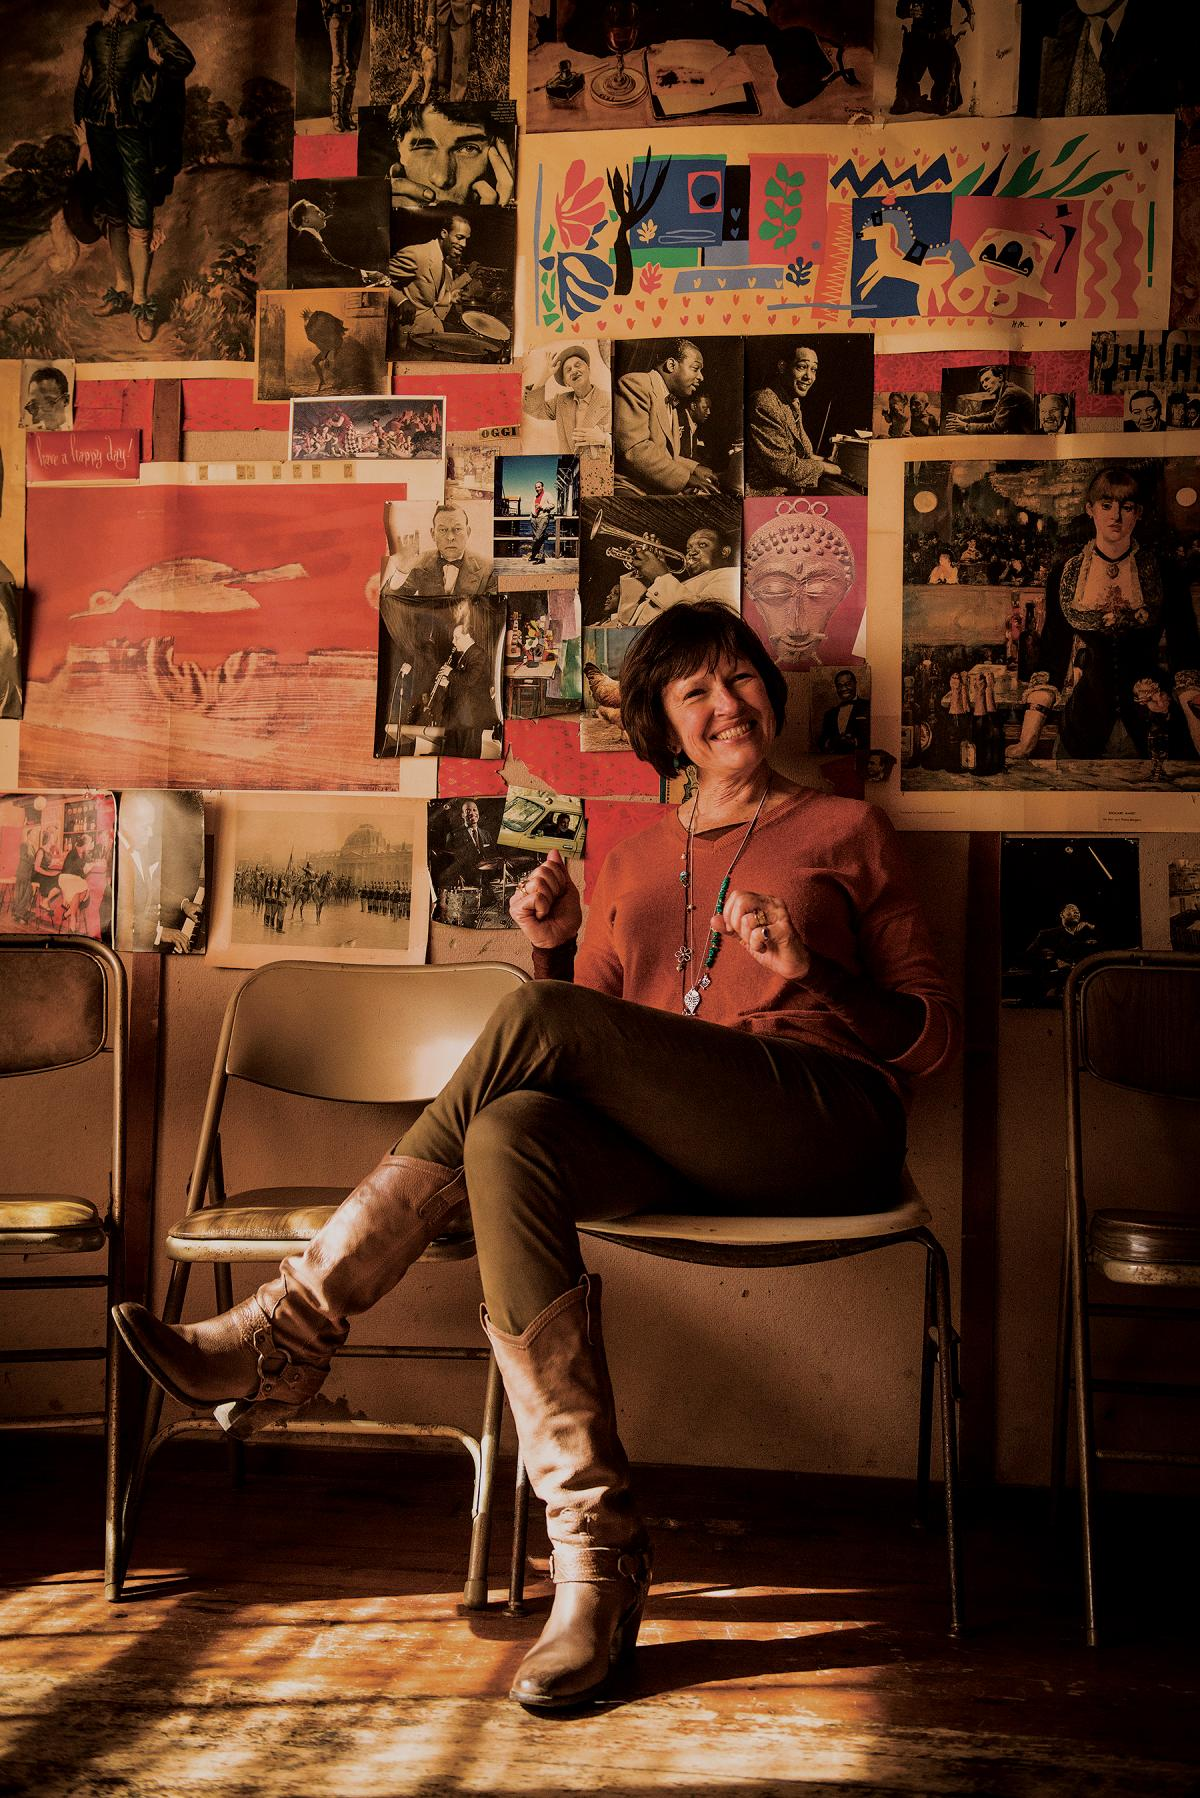 Susan Shillinglaw sitting with her legs crossed, in a room wall papered with photgraphs